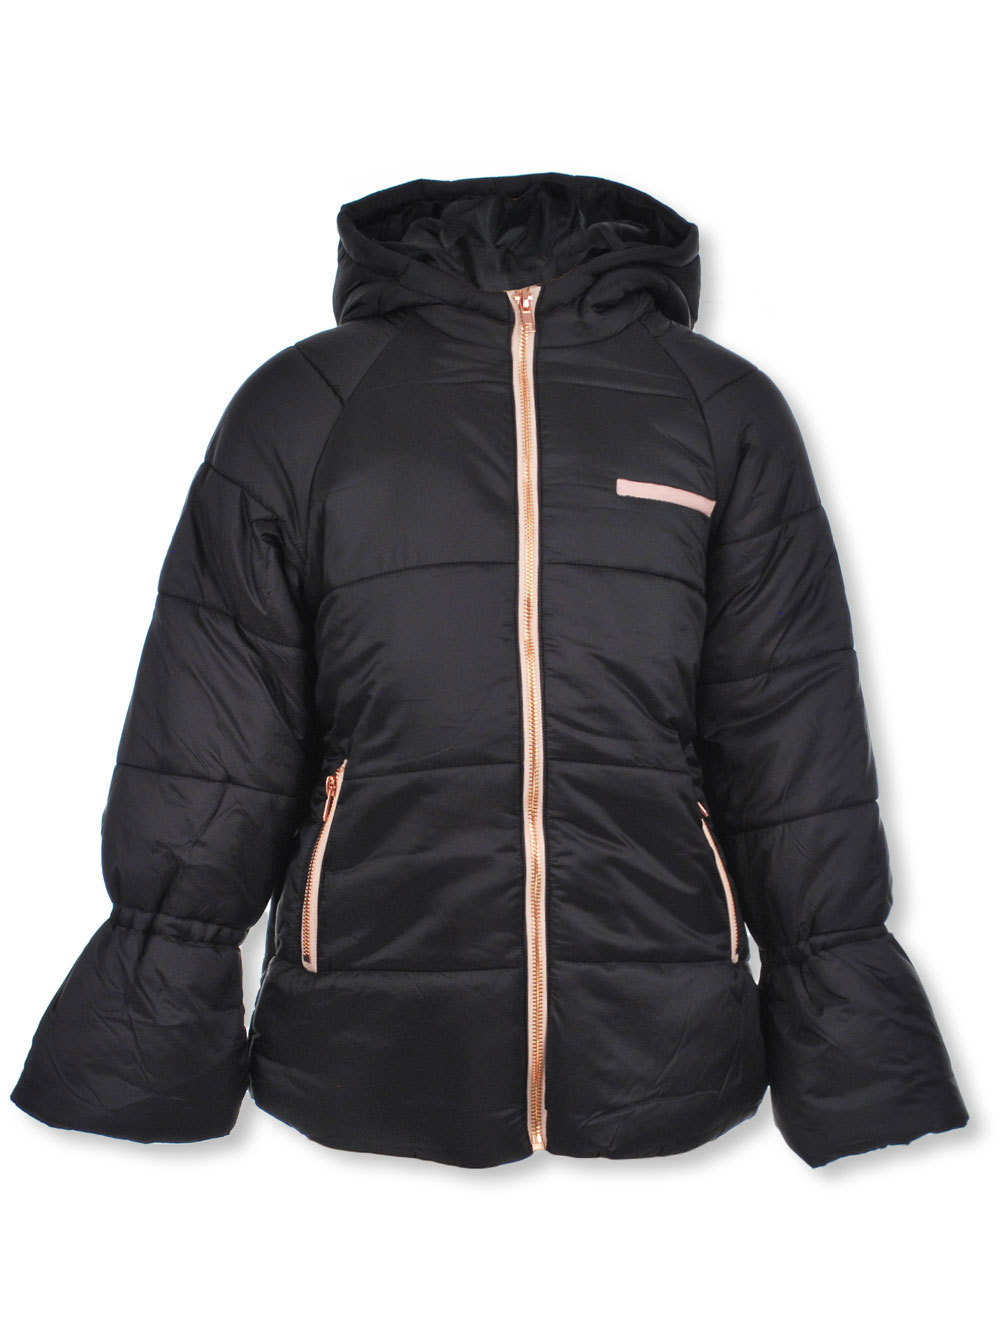 Jackets Insulated Jacket